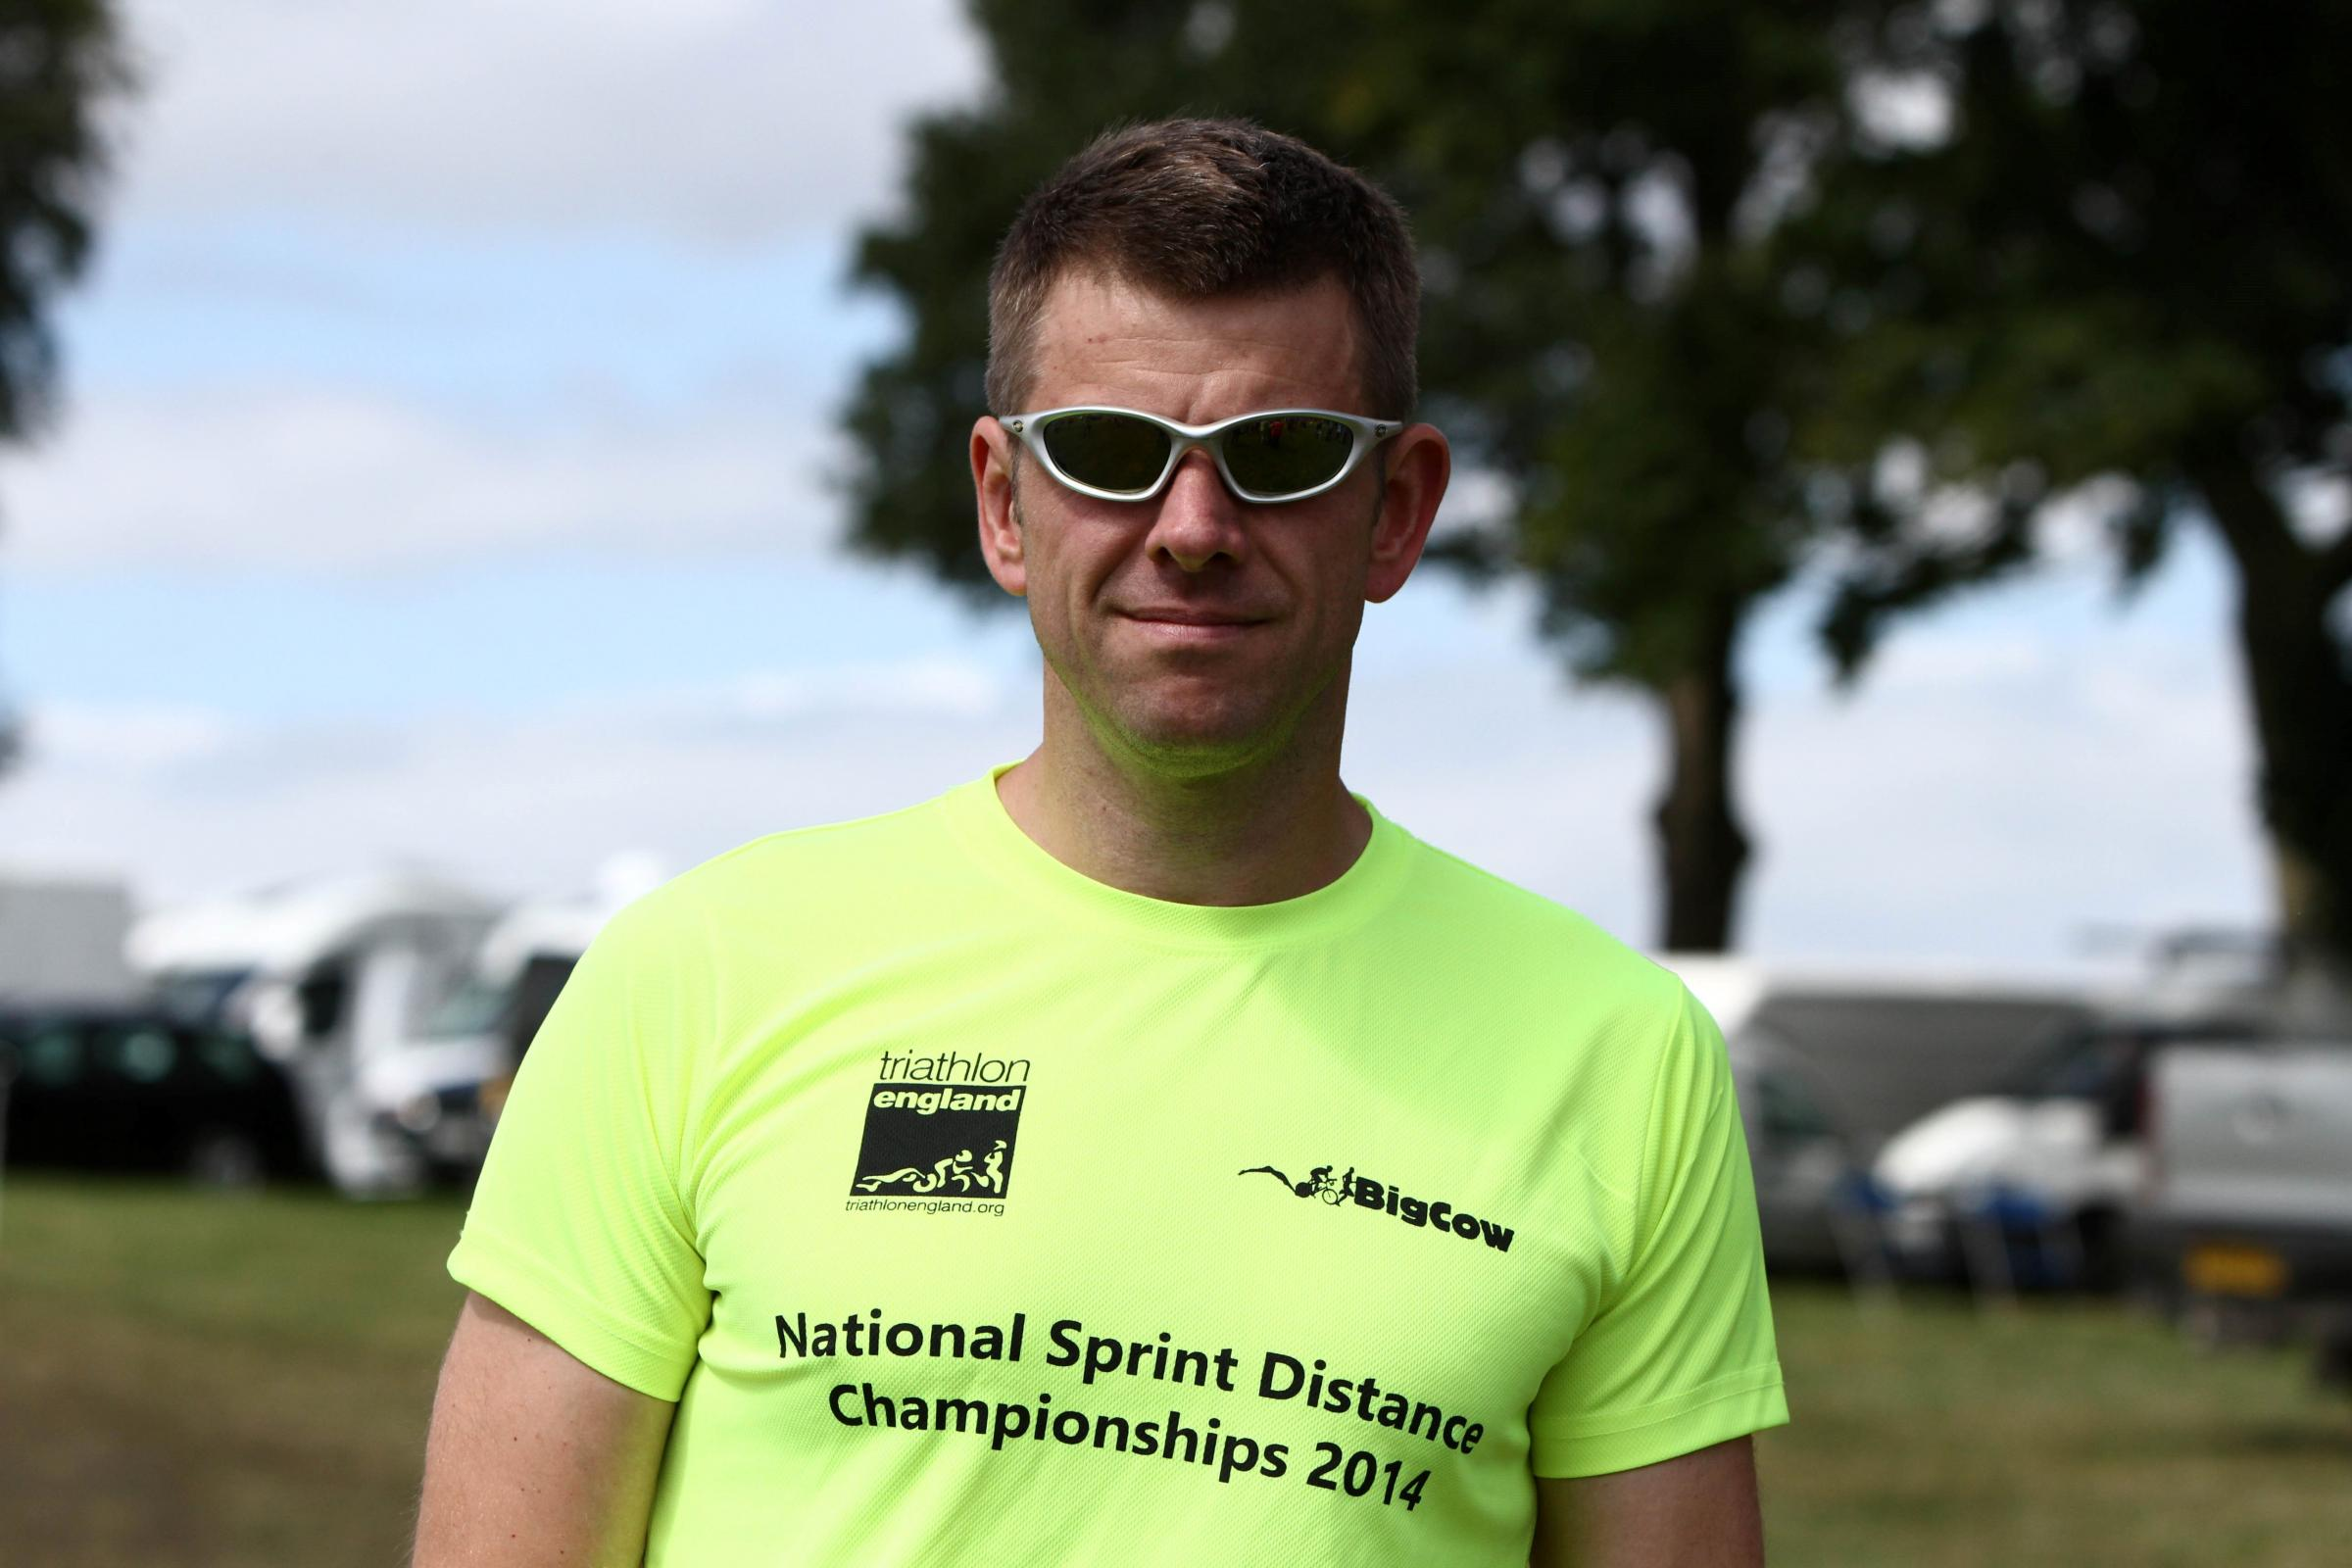 Police detective represents UK at international triathlon contest